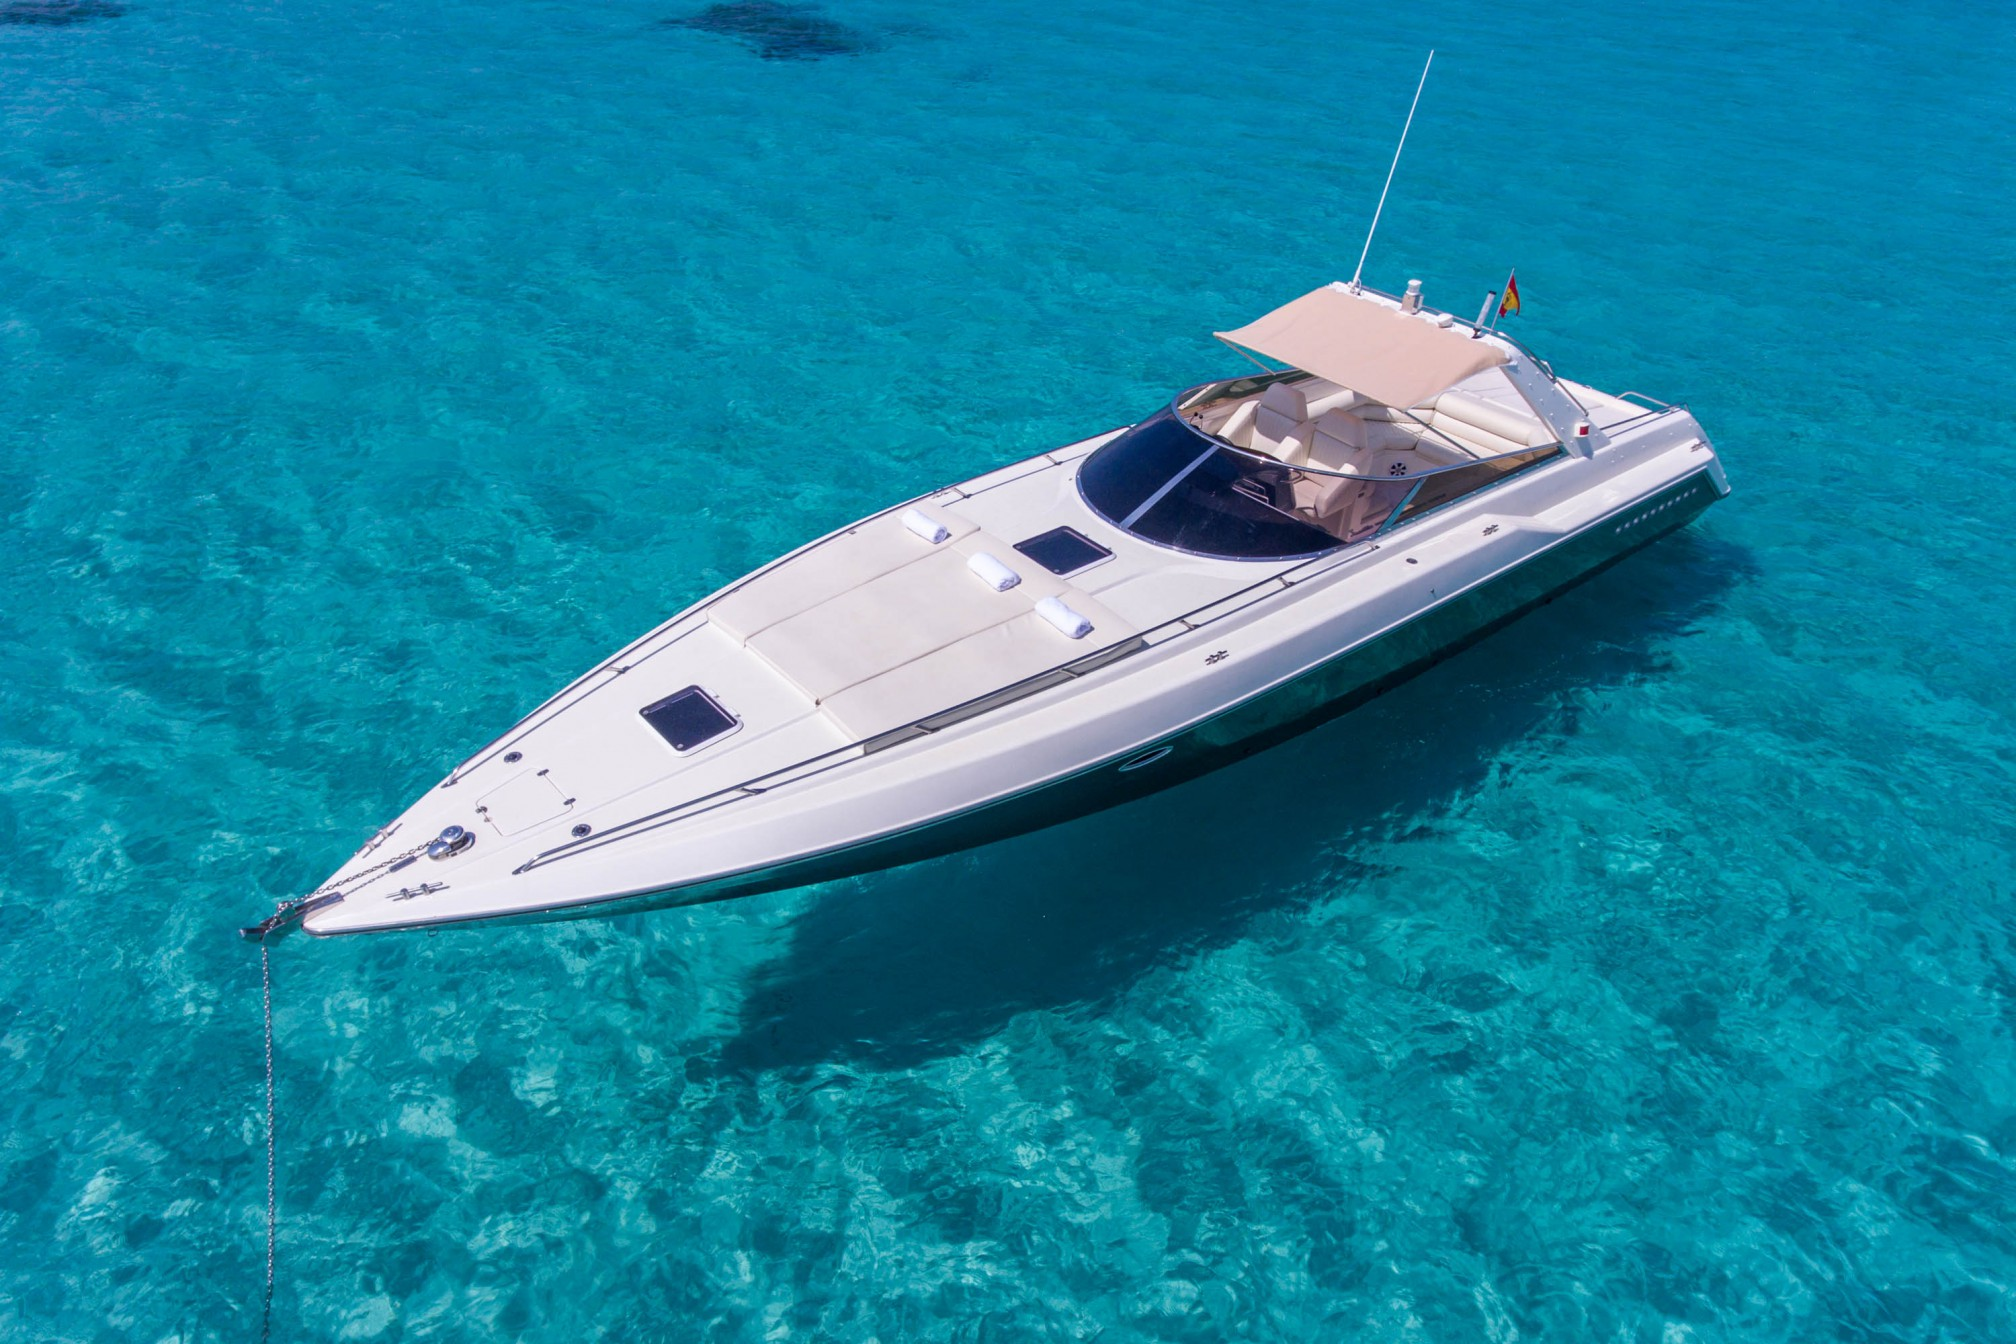 Rental yacht Sunseeker 43 sailing